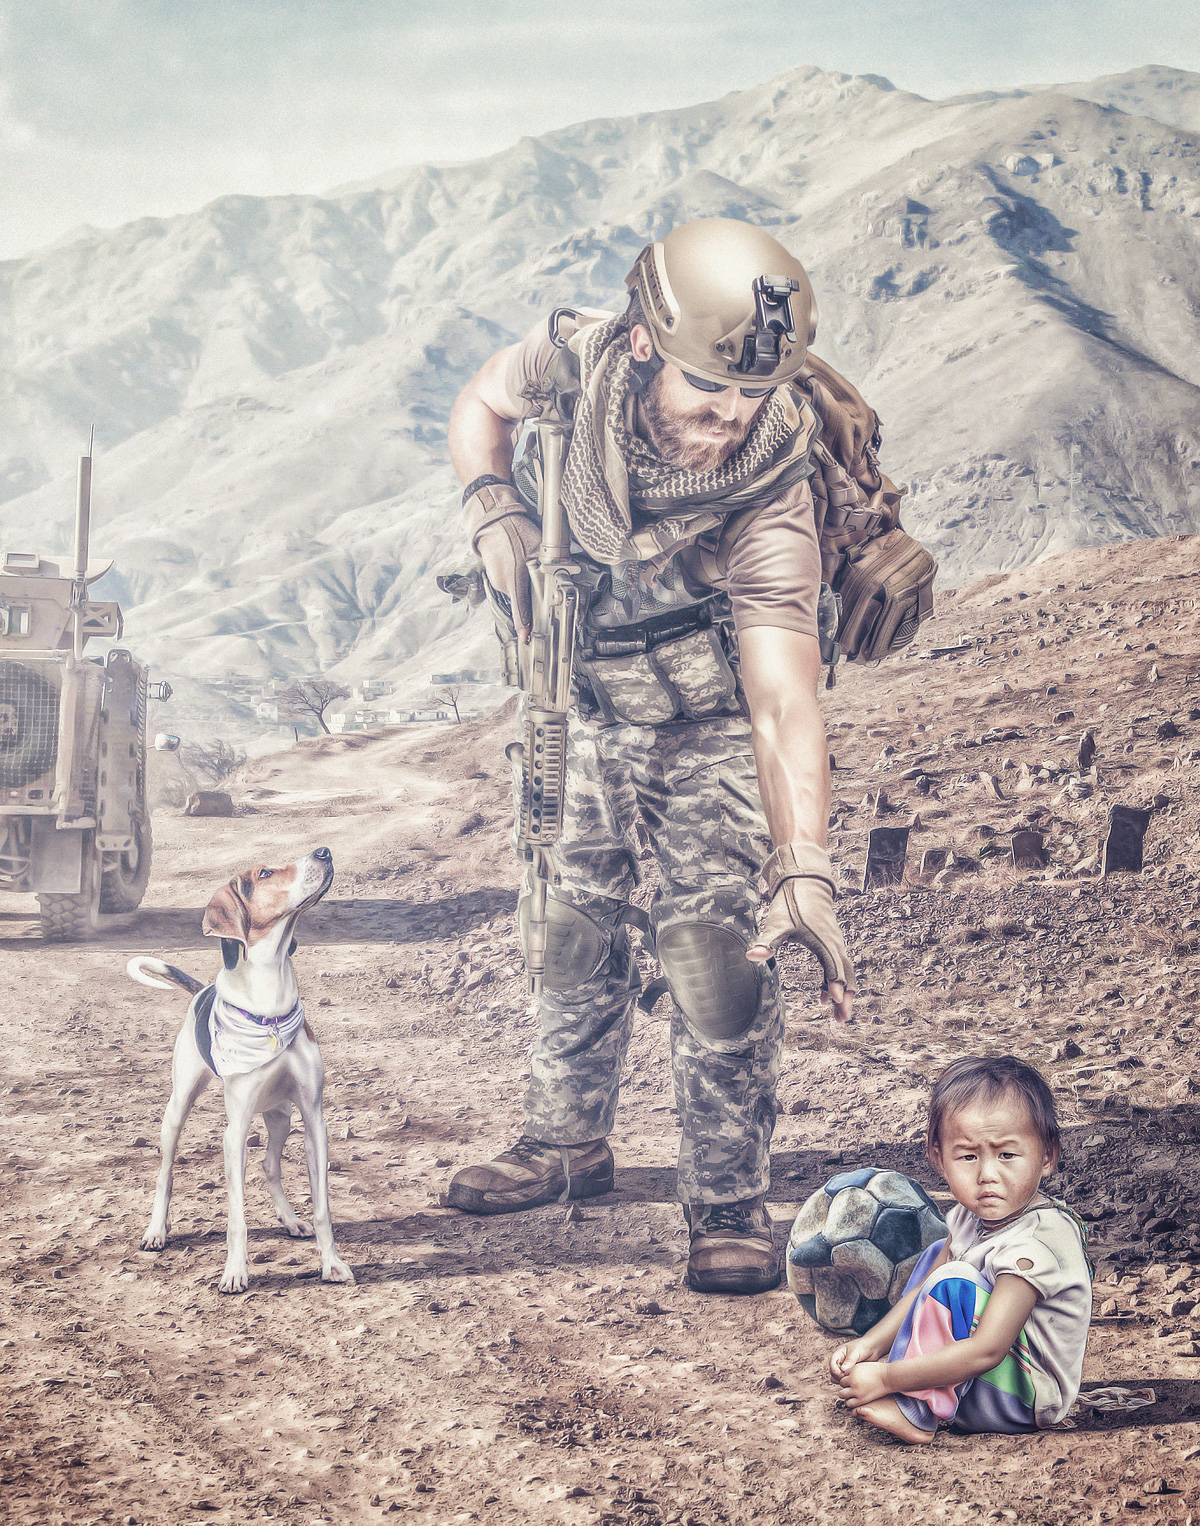 soldier child dog desert Vehicle ball compositing PS photoshop